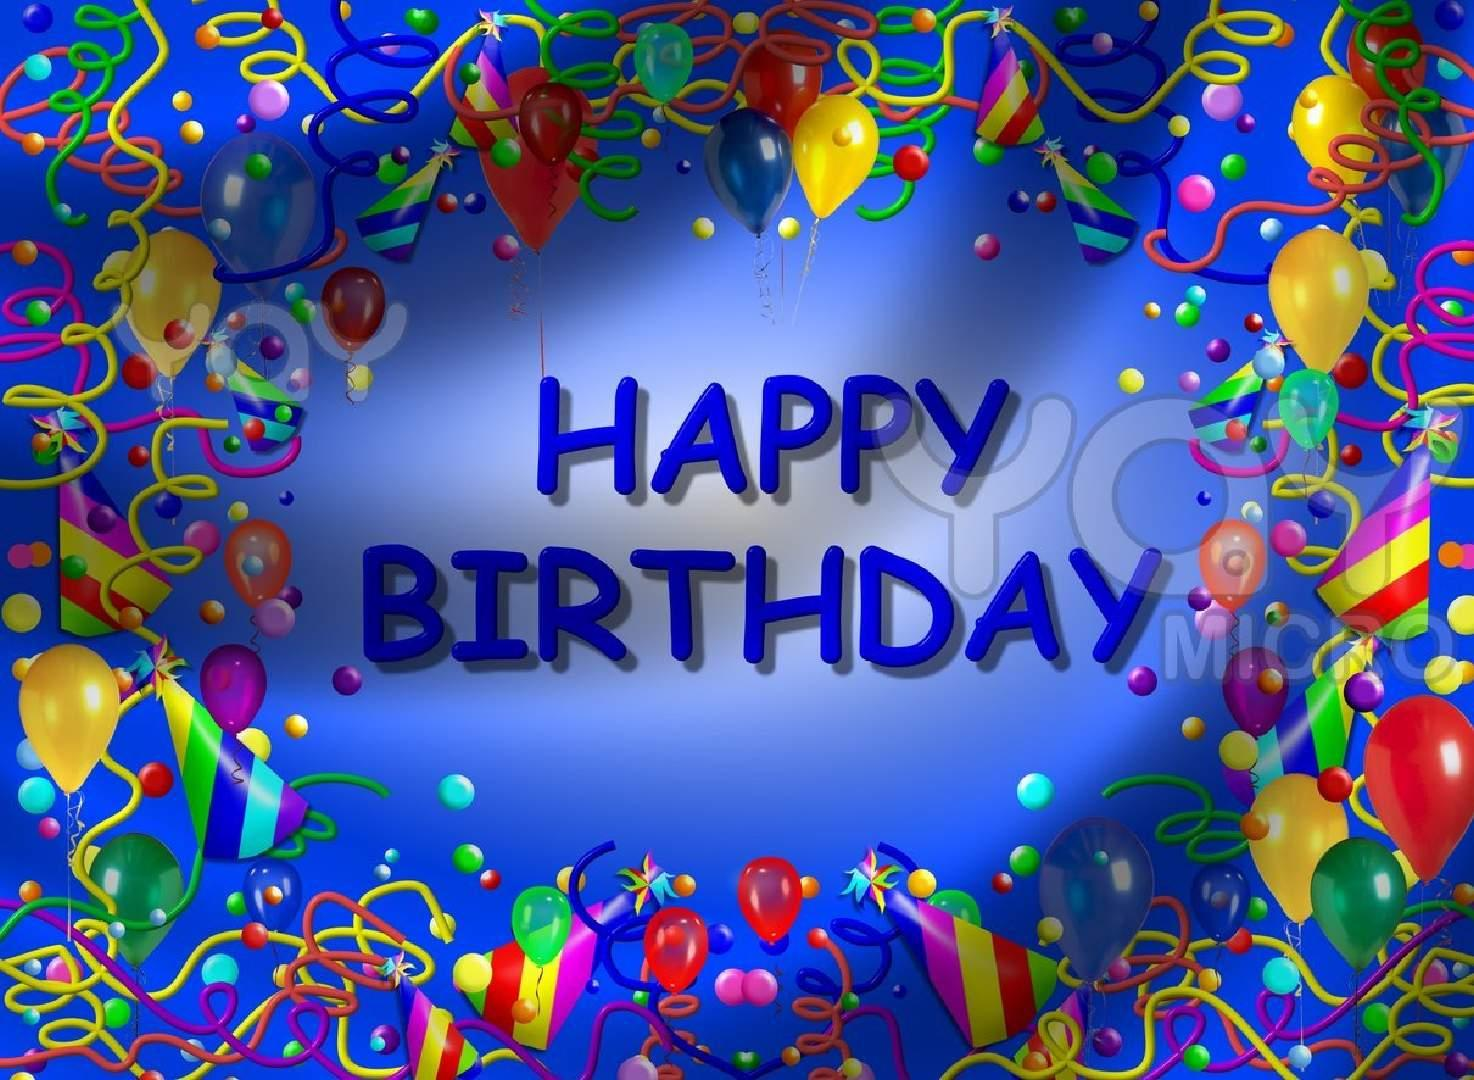 Happy Birthday Wallpaper Wallpapers Gallery 1474x1080